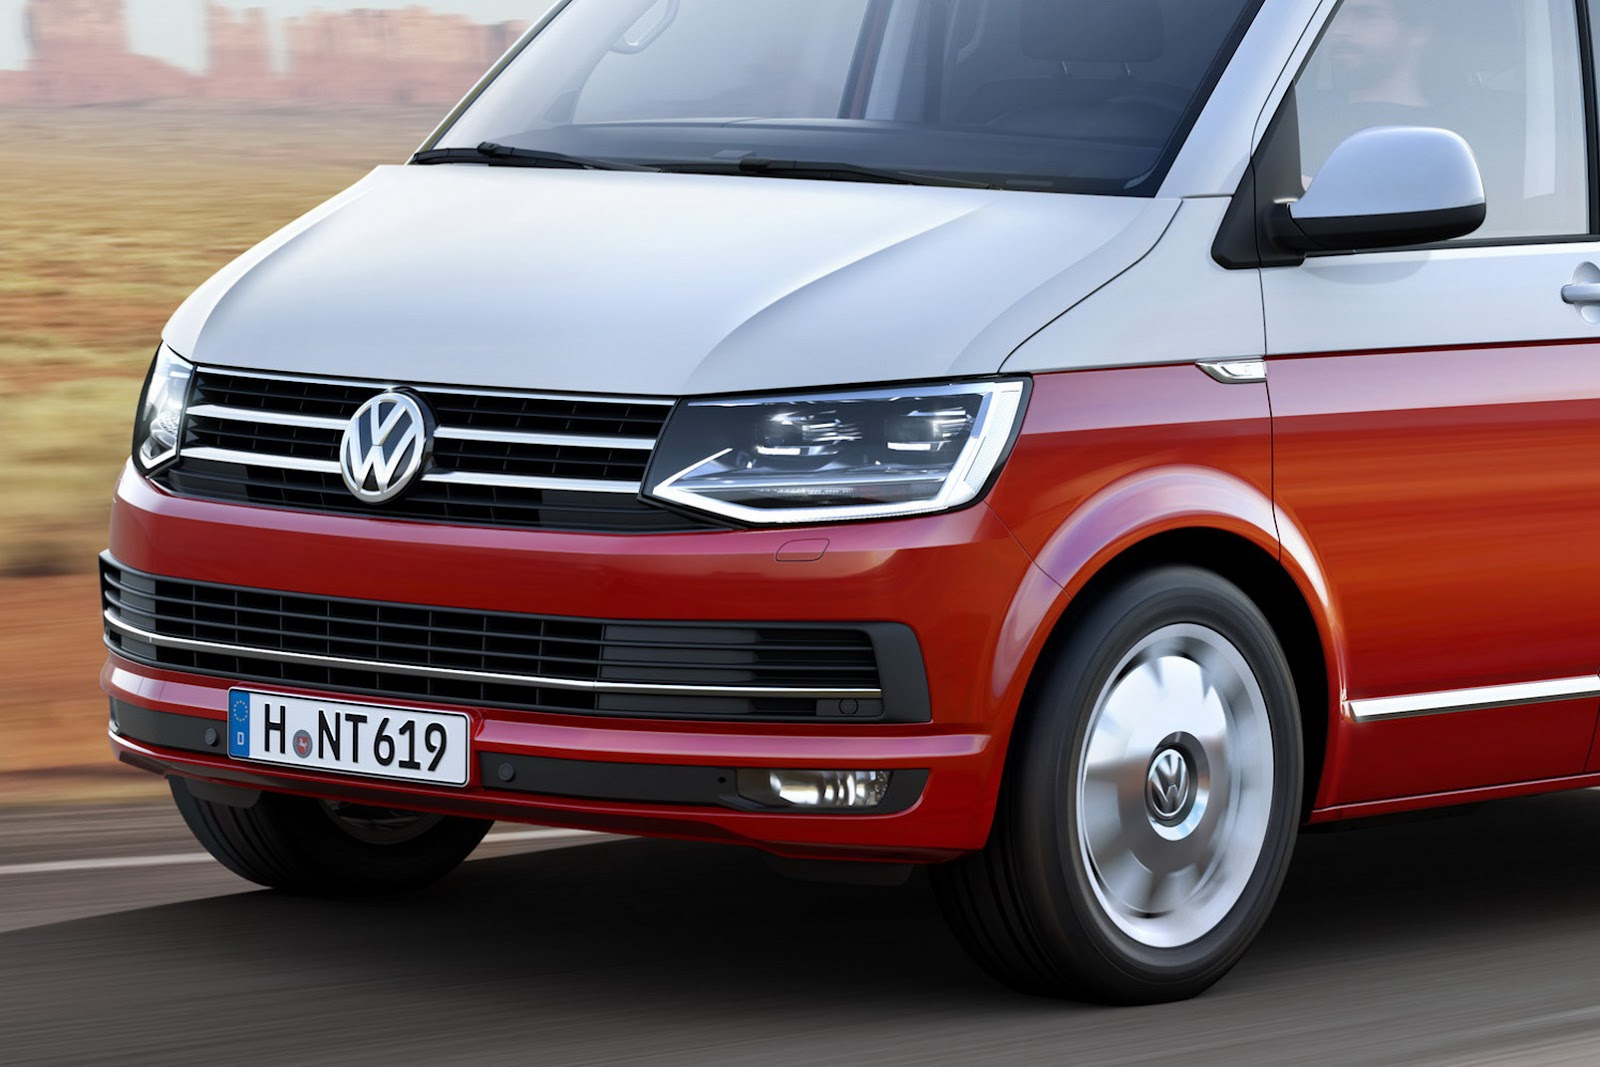 This Is VW's All-New T6 Transporter Van | Carscoops